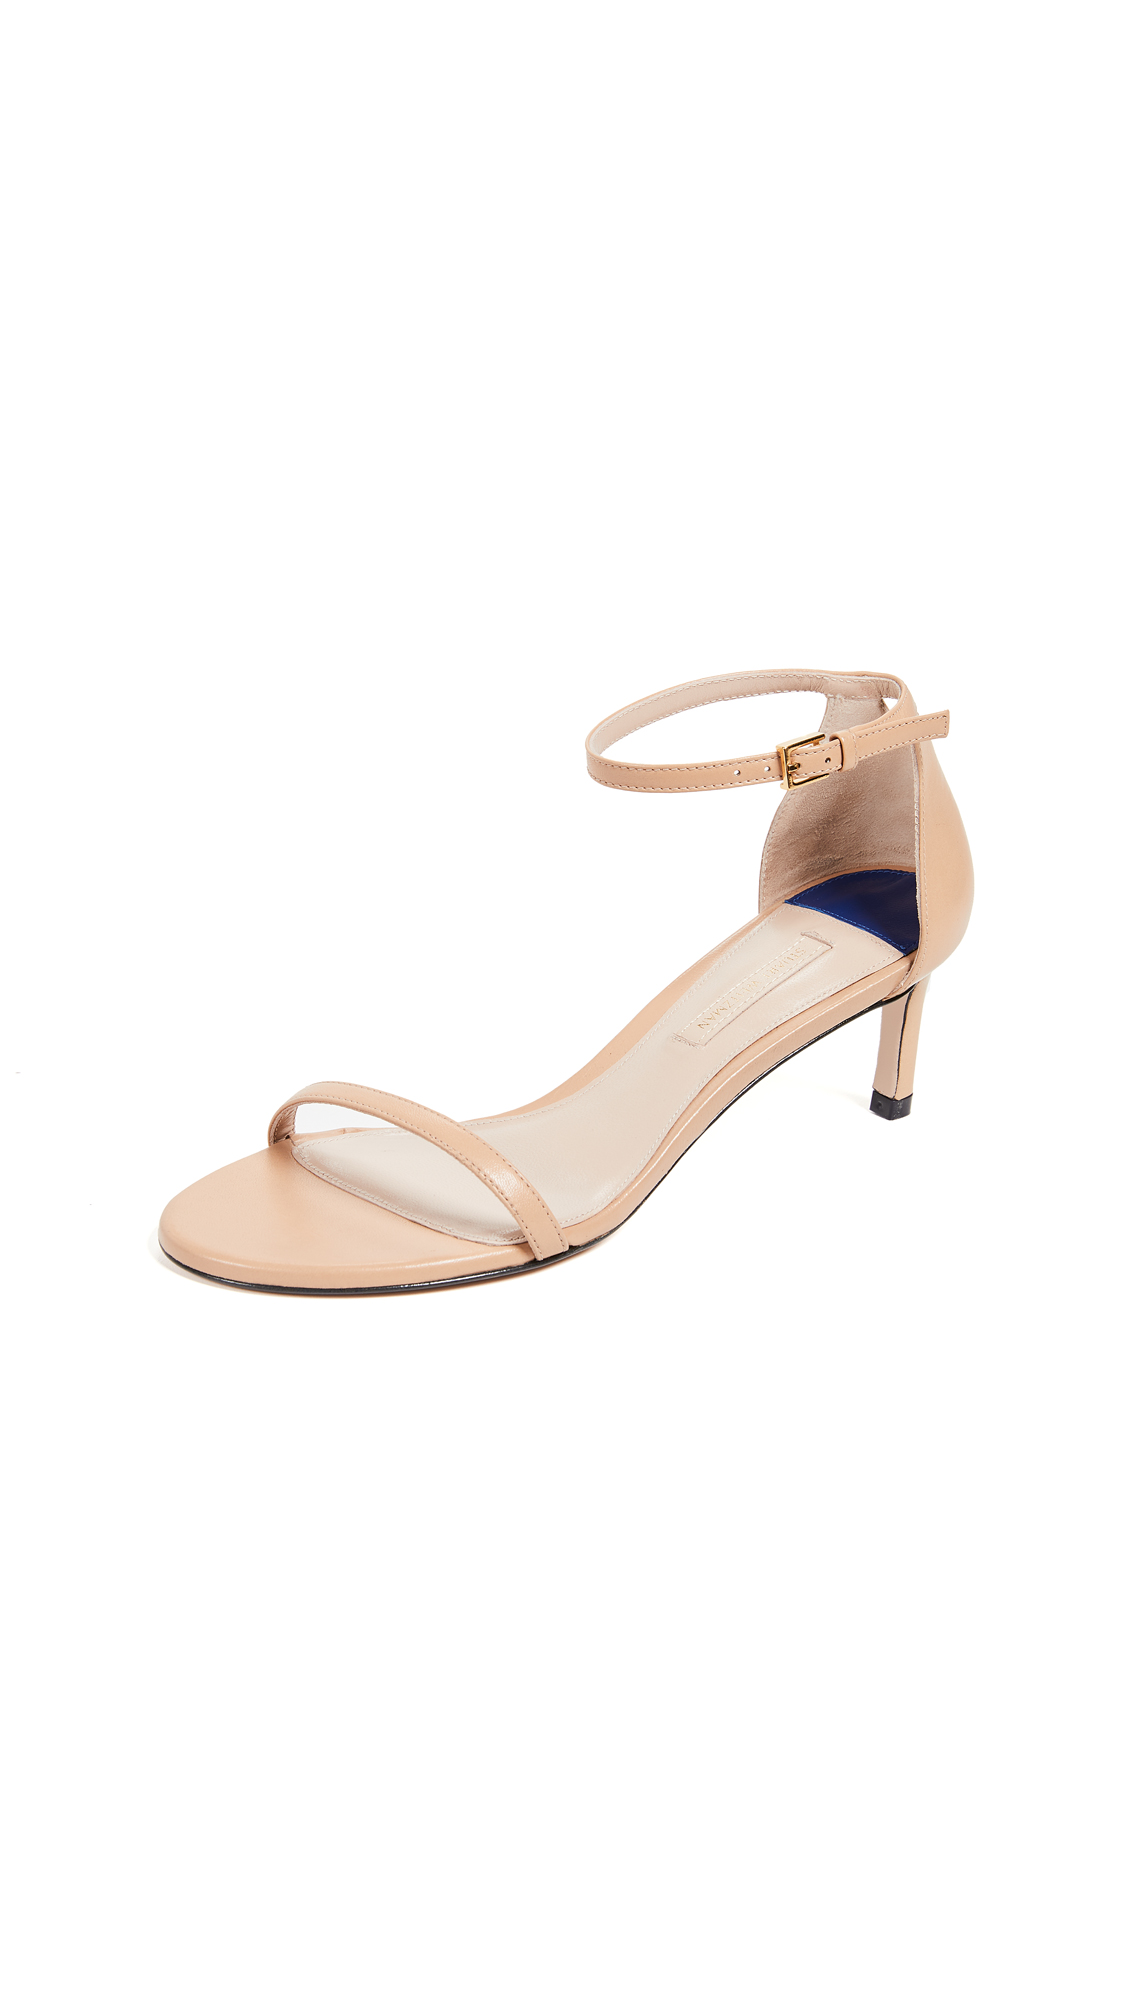 Stuart Weitzman Nudist Traditional 45mm Sandals - Bambina